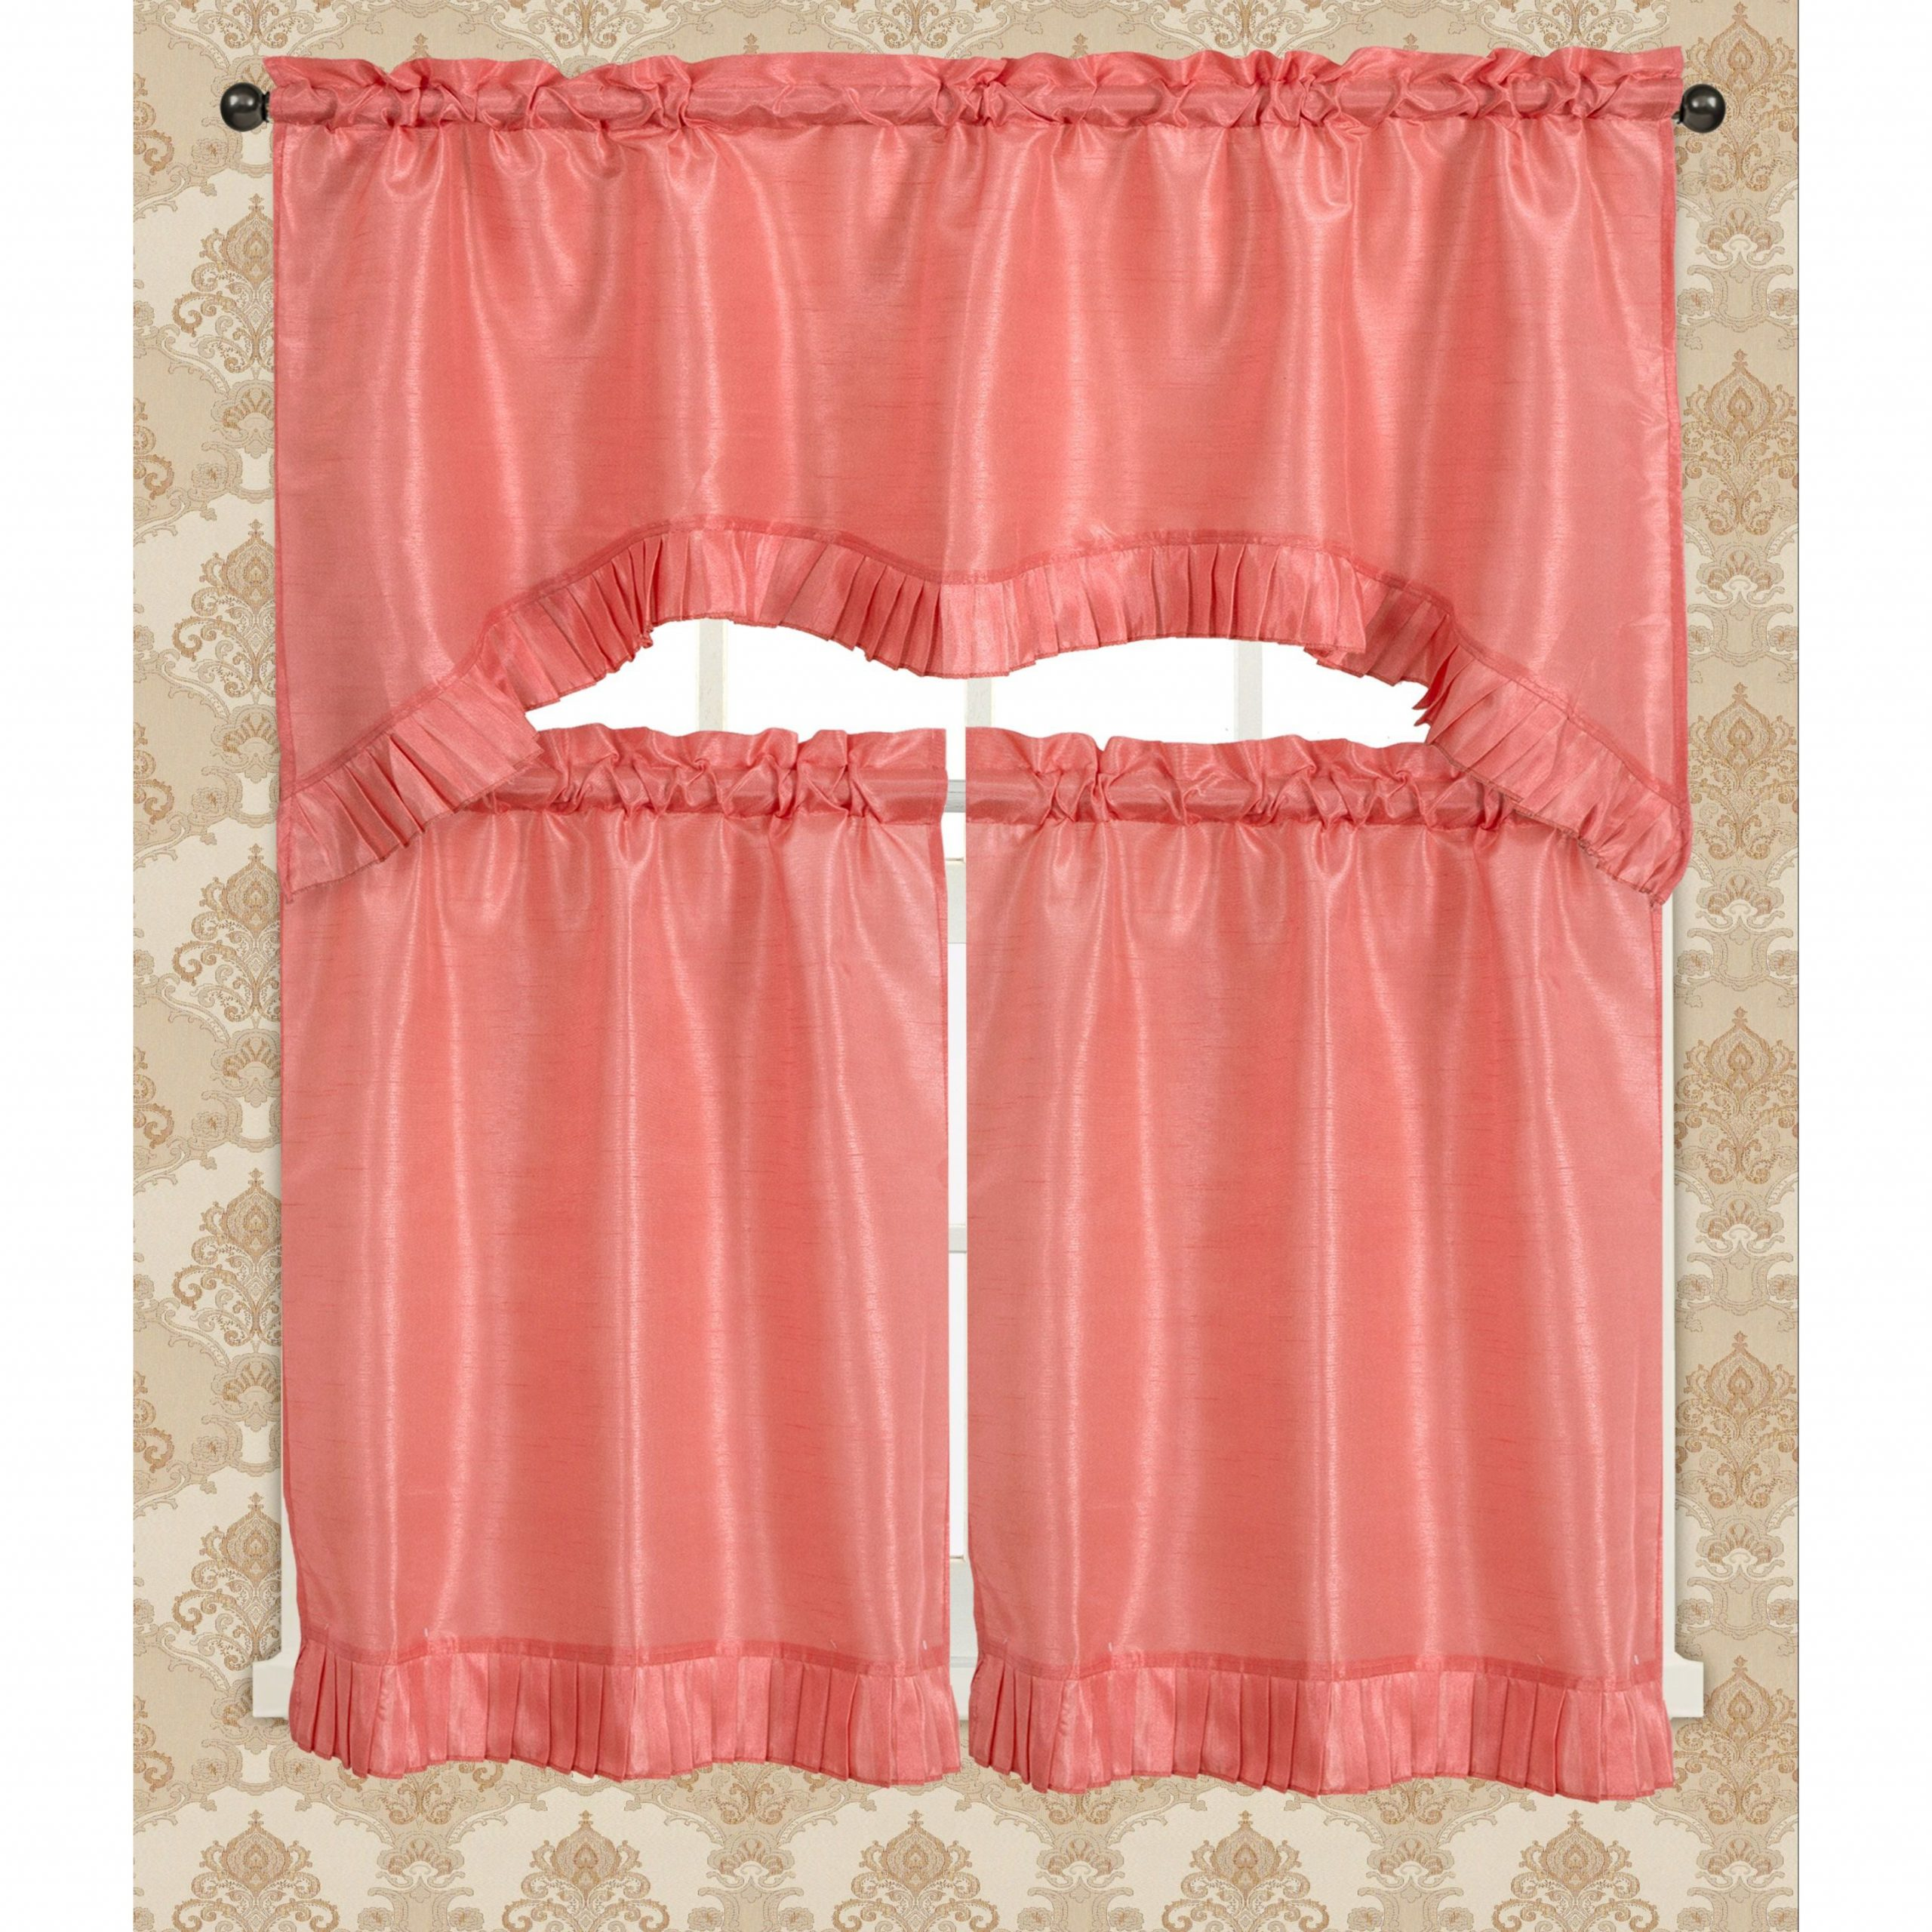 Bermuda Ruffle Kitchen Curtain Tier Set For Bermuda Ruffle Kitchen Curtain Tier Sets (View 5 of 20)